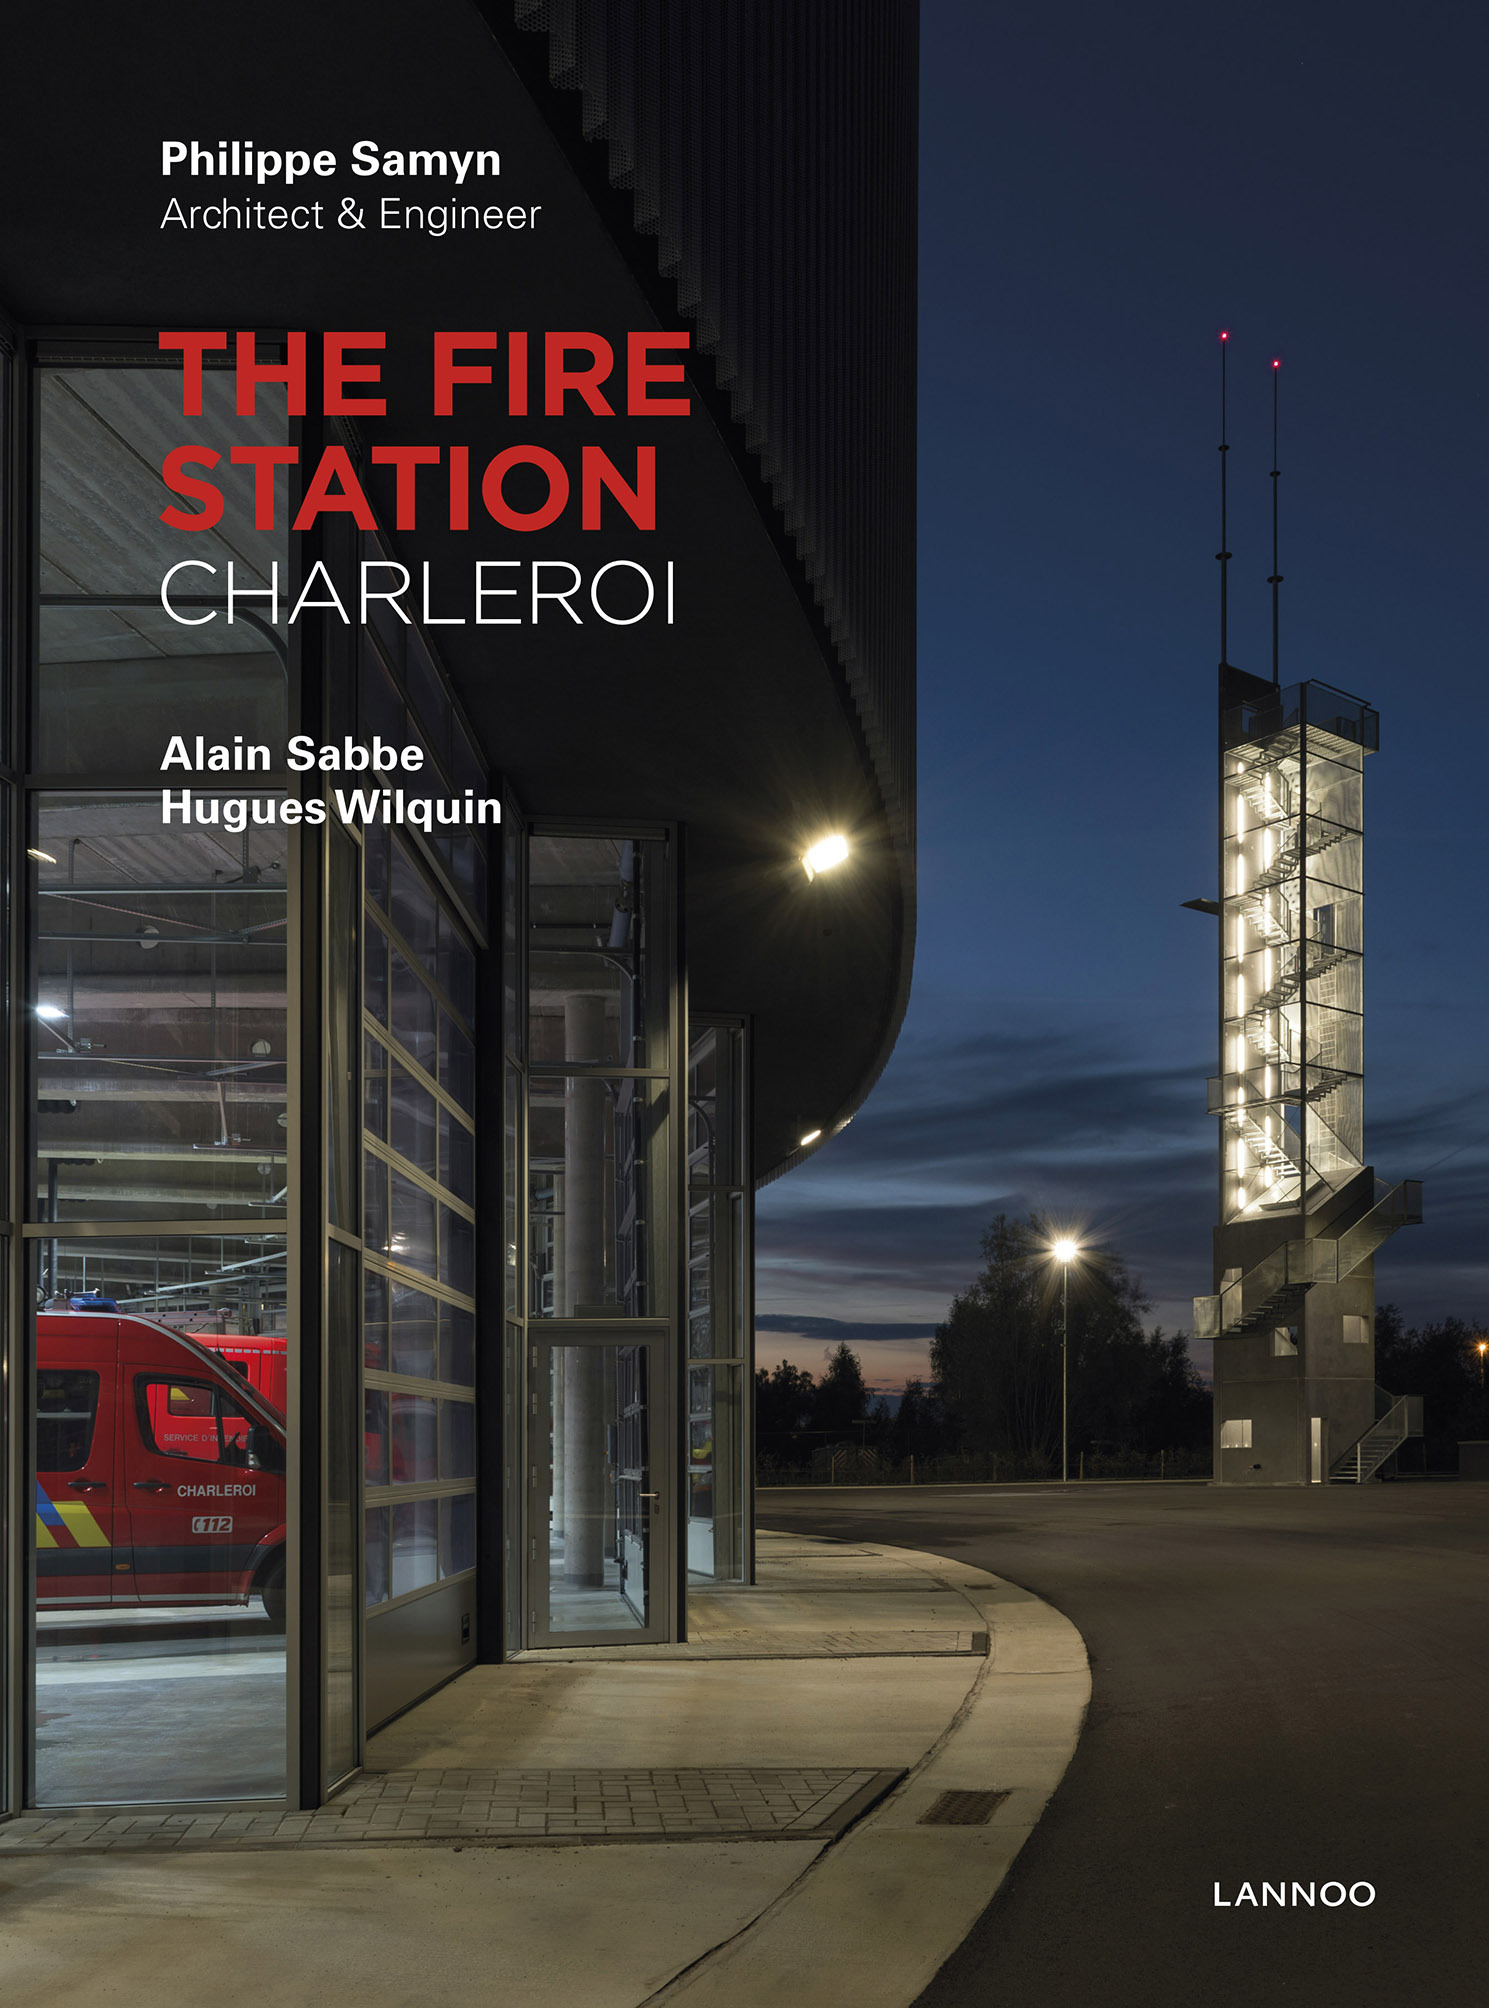 THE FIRE STATION CHARLEROI